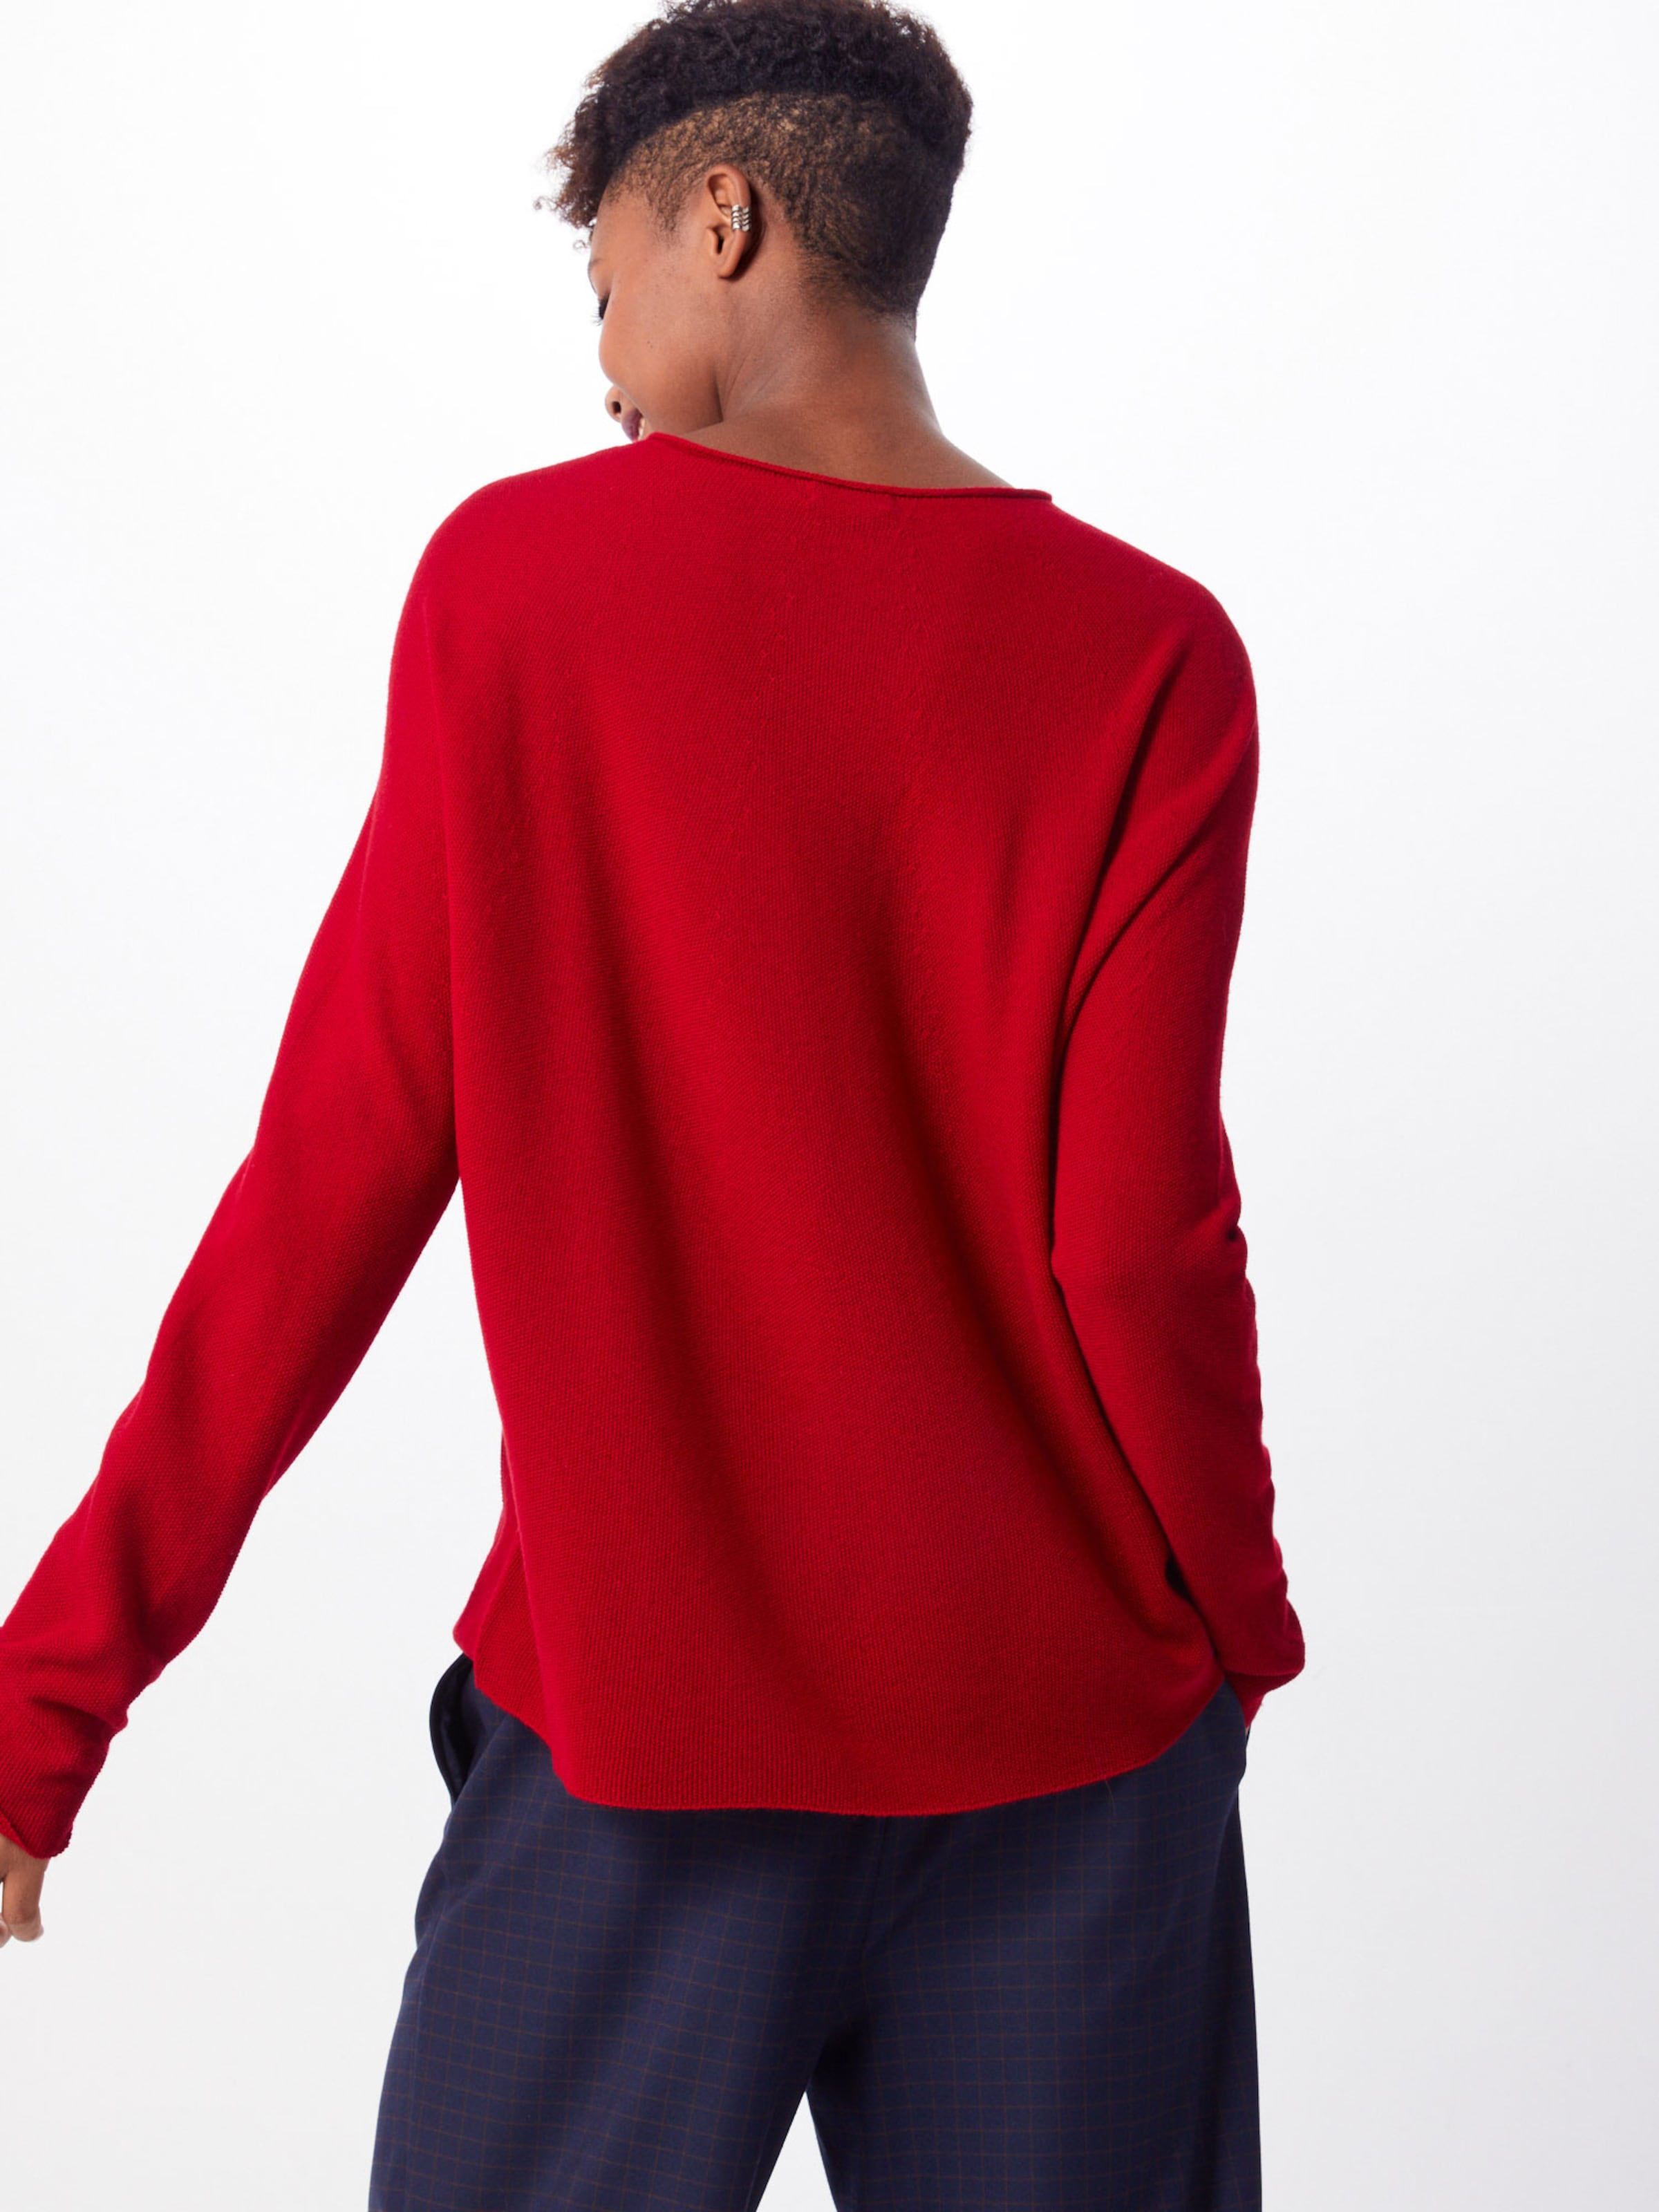 Pullover Rot Rot 'maila' Drykorn 'maila' In Drykorn Pullover In UMqVpGSz